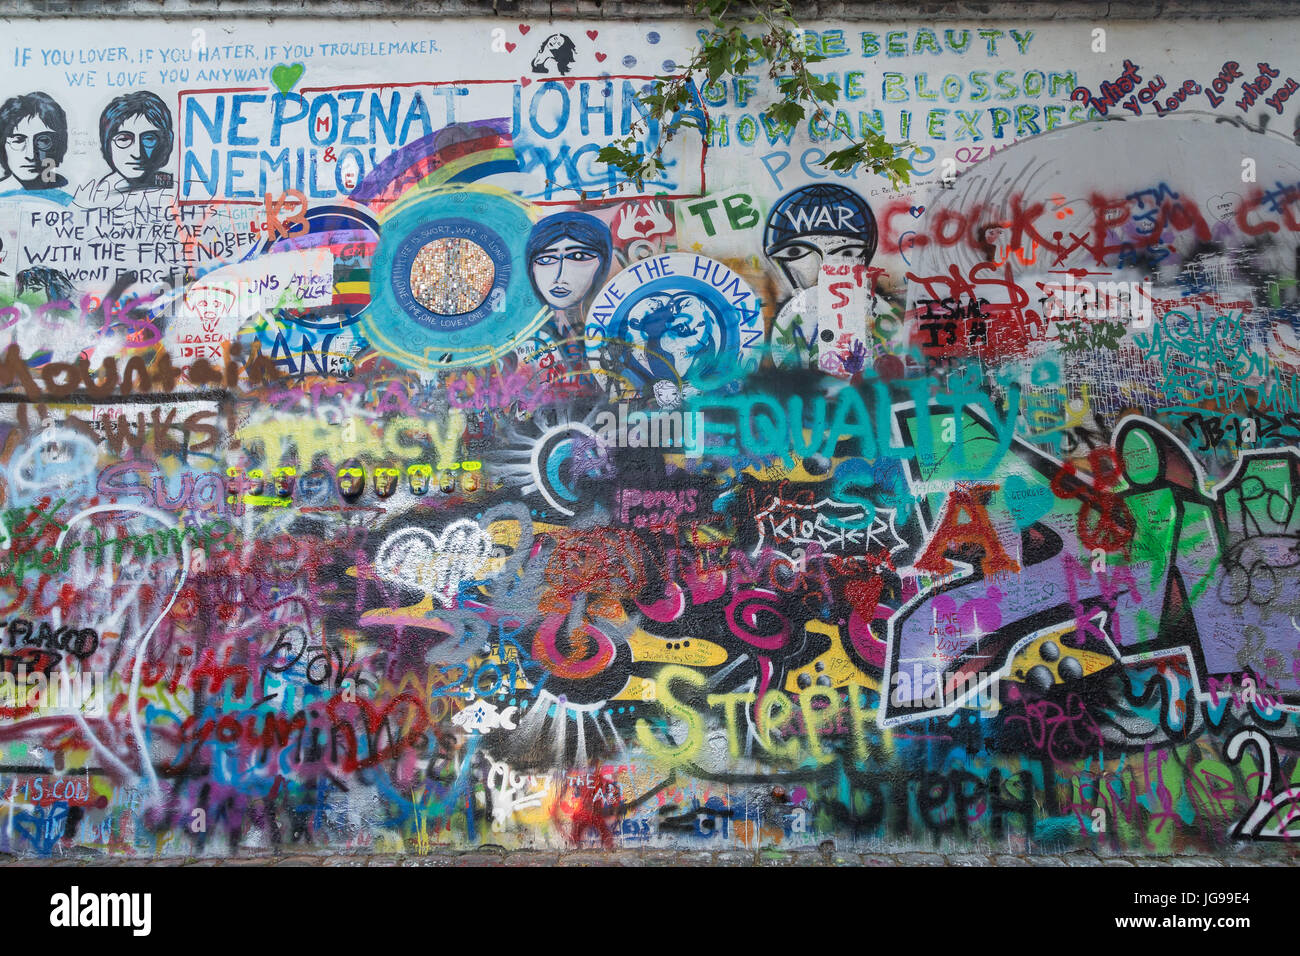 John lennon wall in prague czech republic its a wall with pieces of lyrics from beatles songs and john lennon inspired graffiti and art